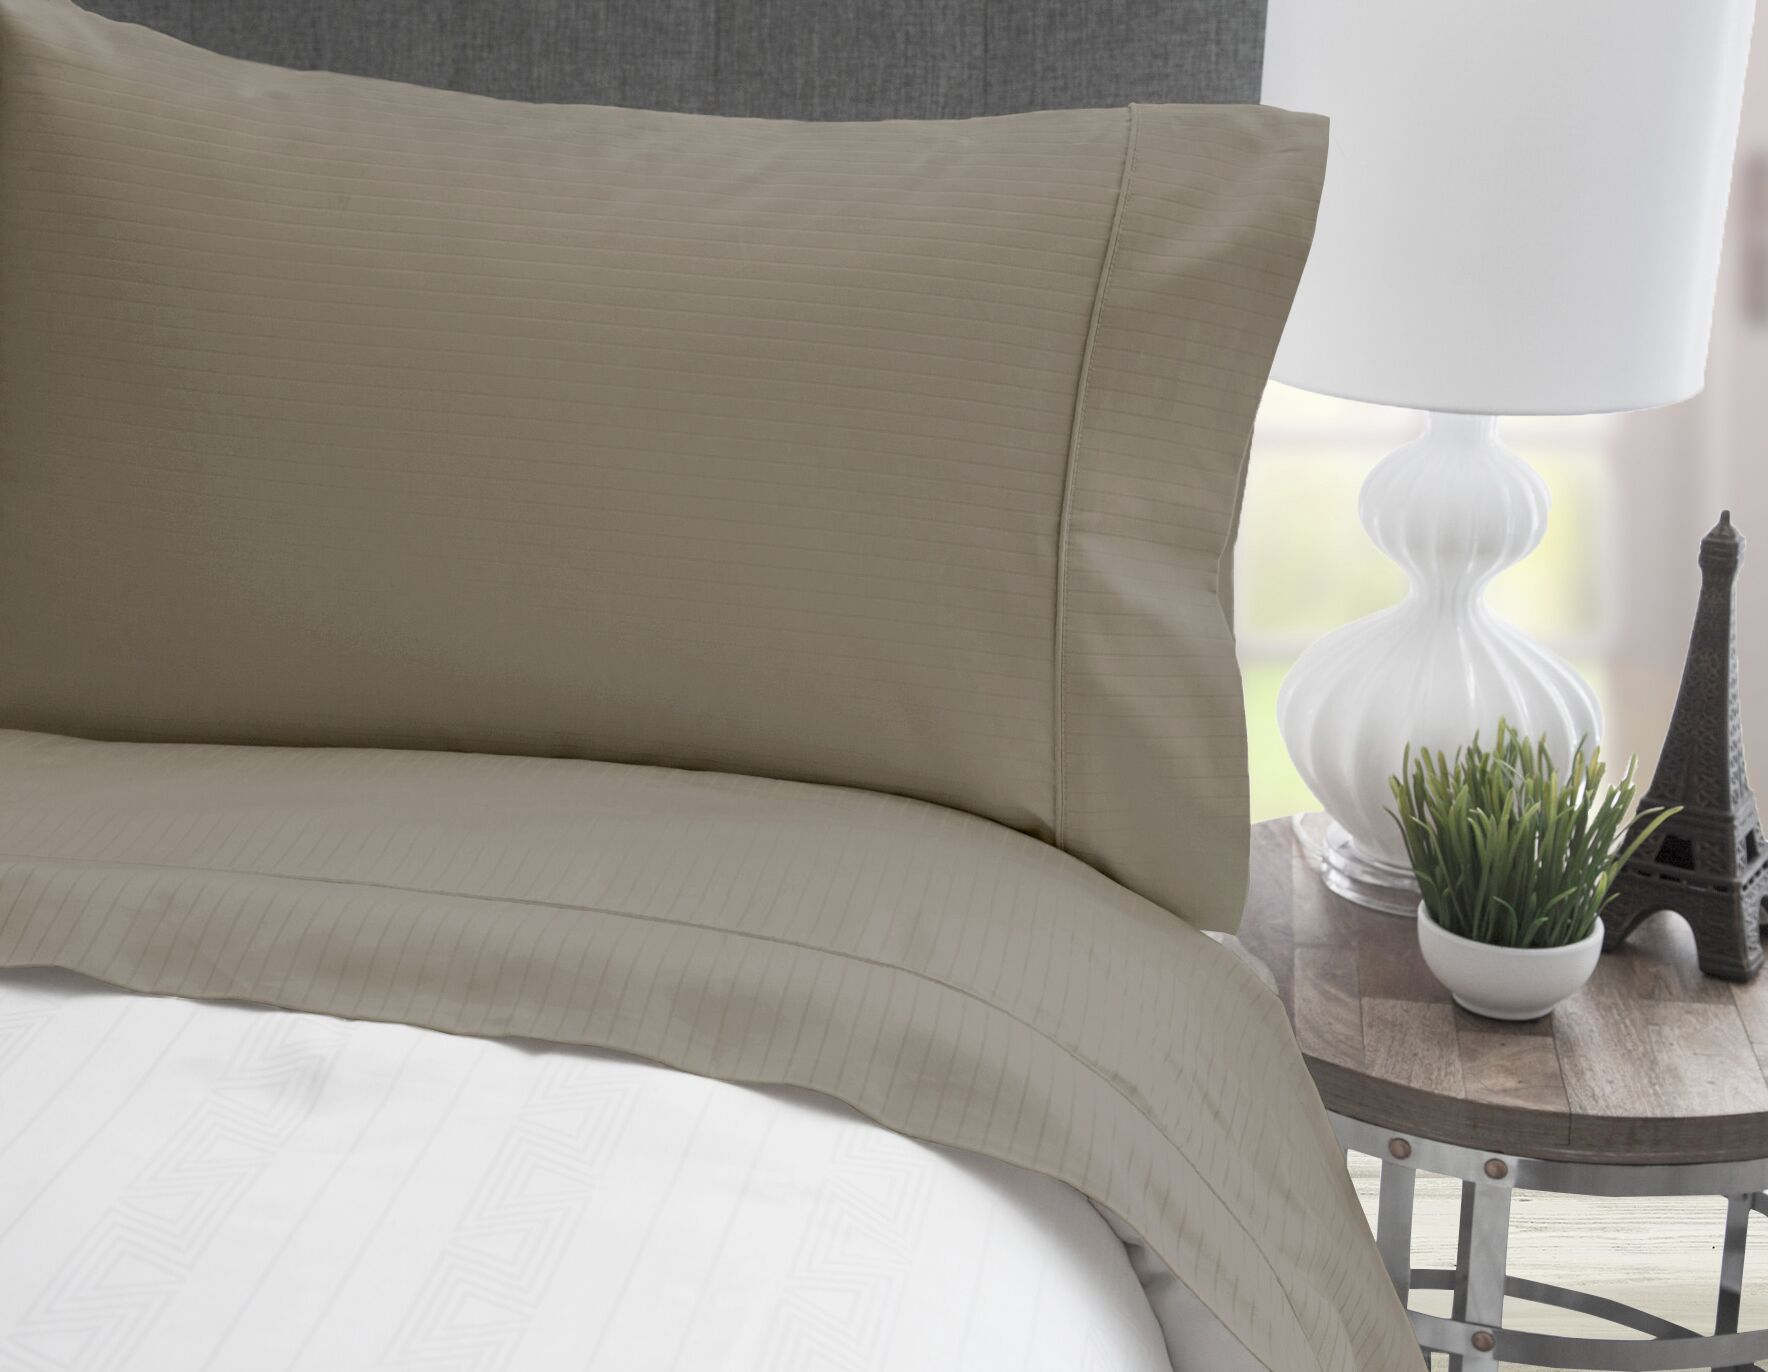 4 Piece 600 Thread Count 100% Egyptian Quality Cotton Stripe Sheet Set Size: Full, Color: Taupe